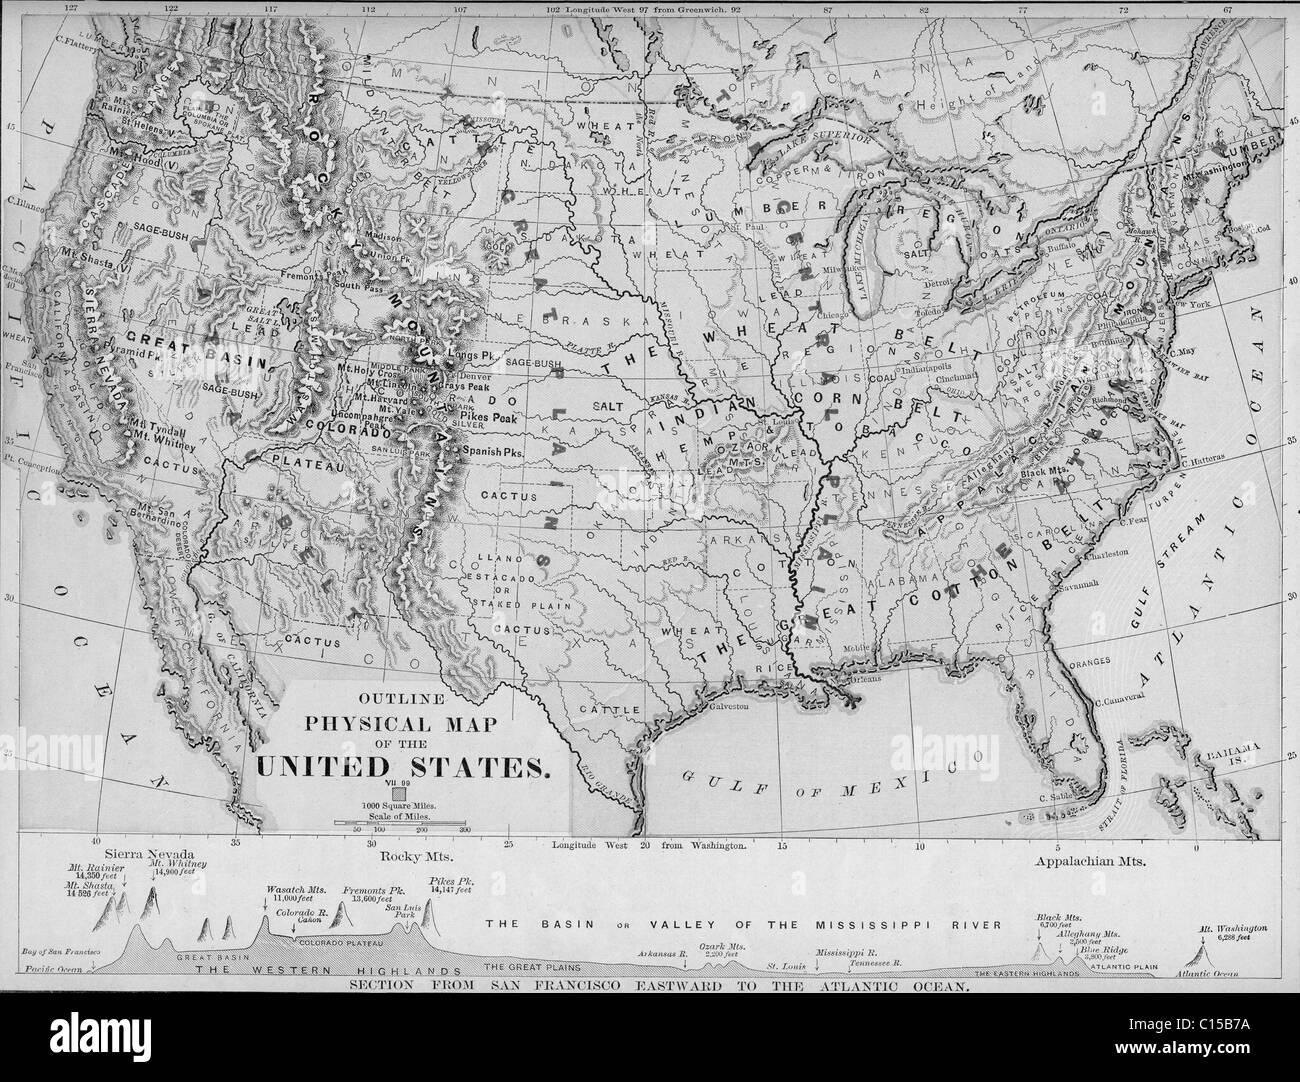 United States Maps Old Stock Photos United States Maps Old Stock - Old-map-of-us